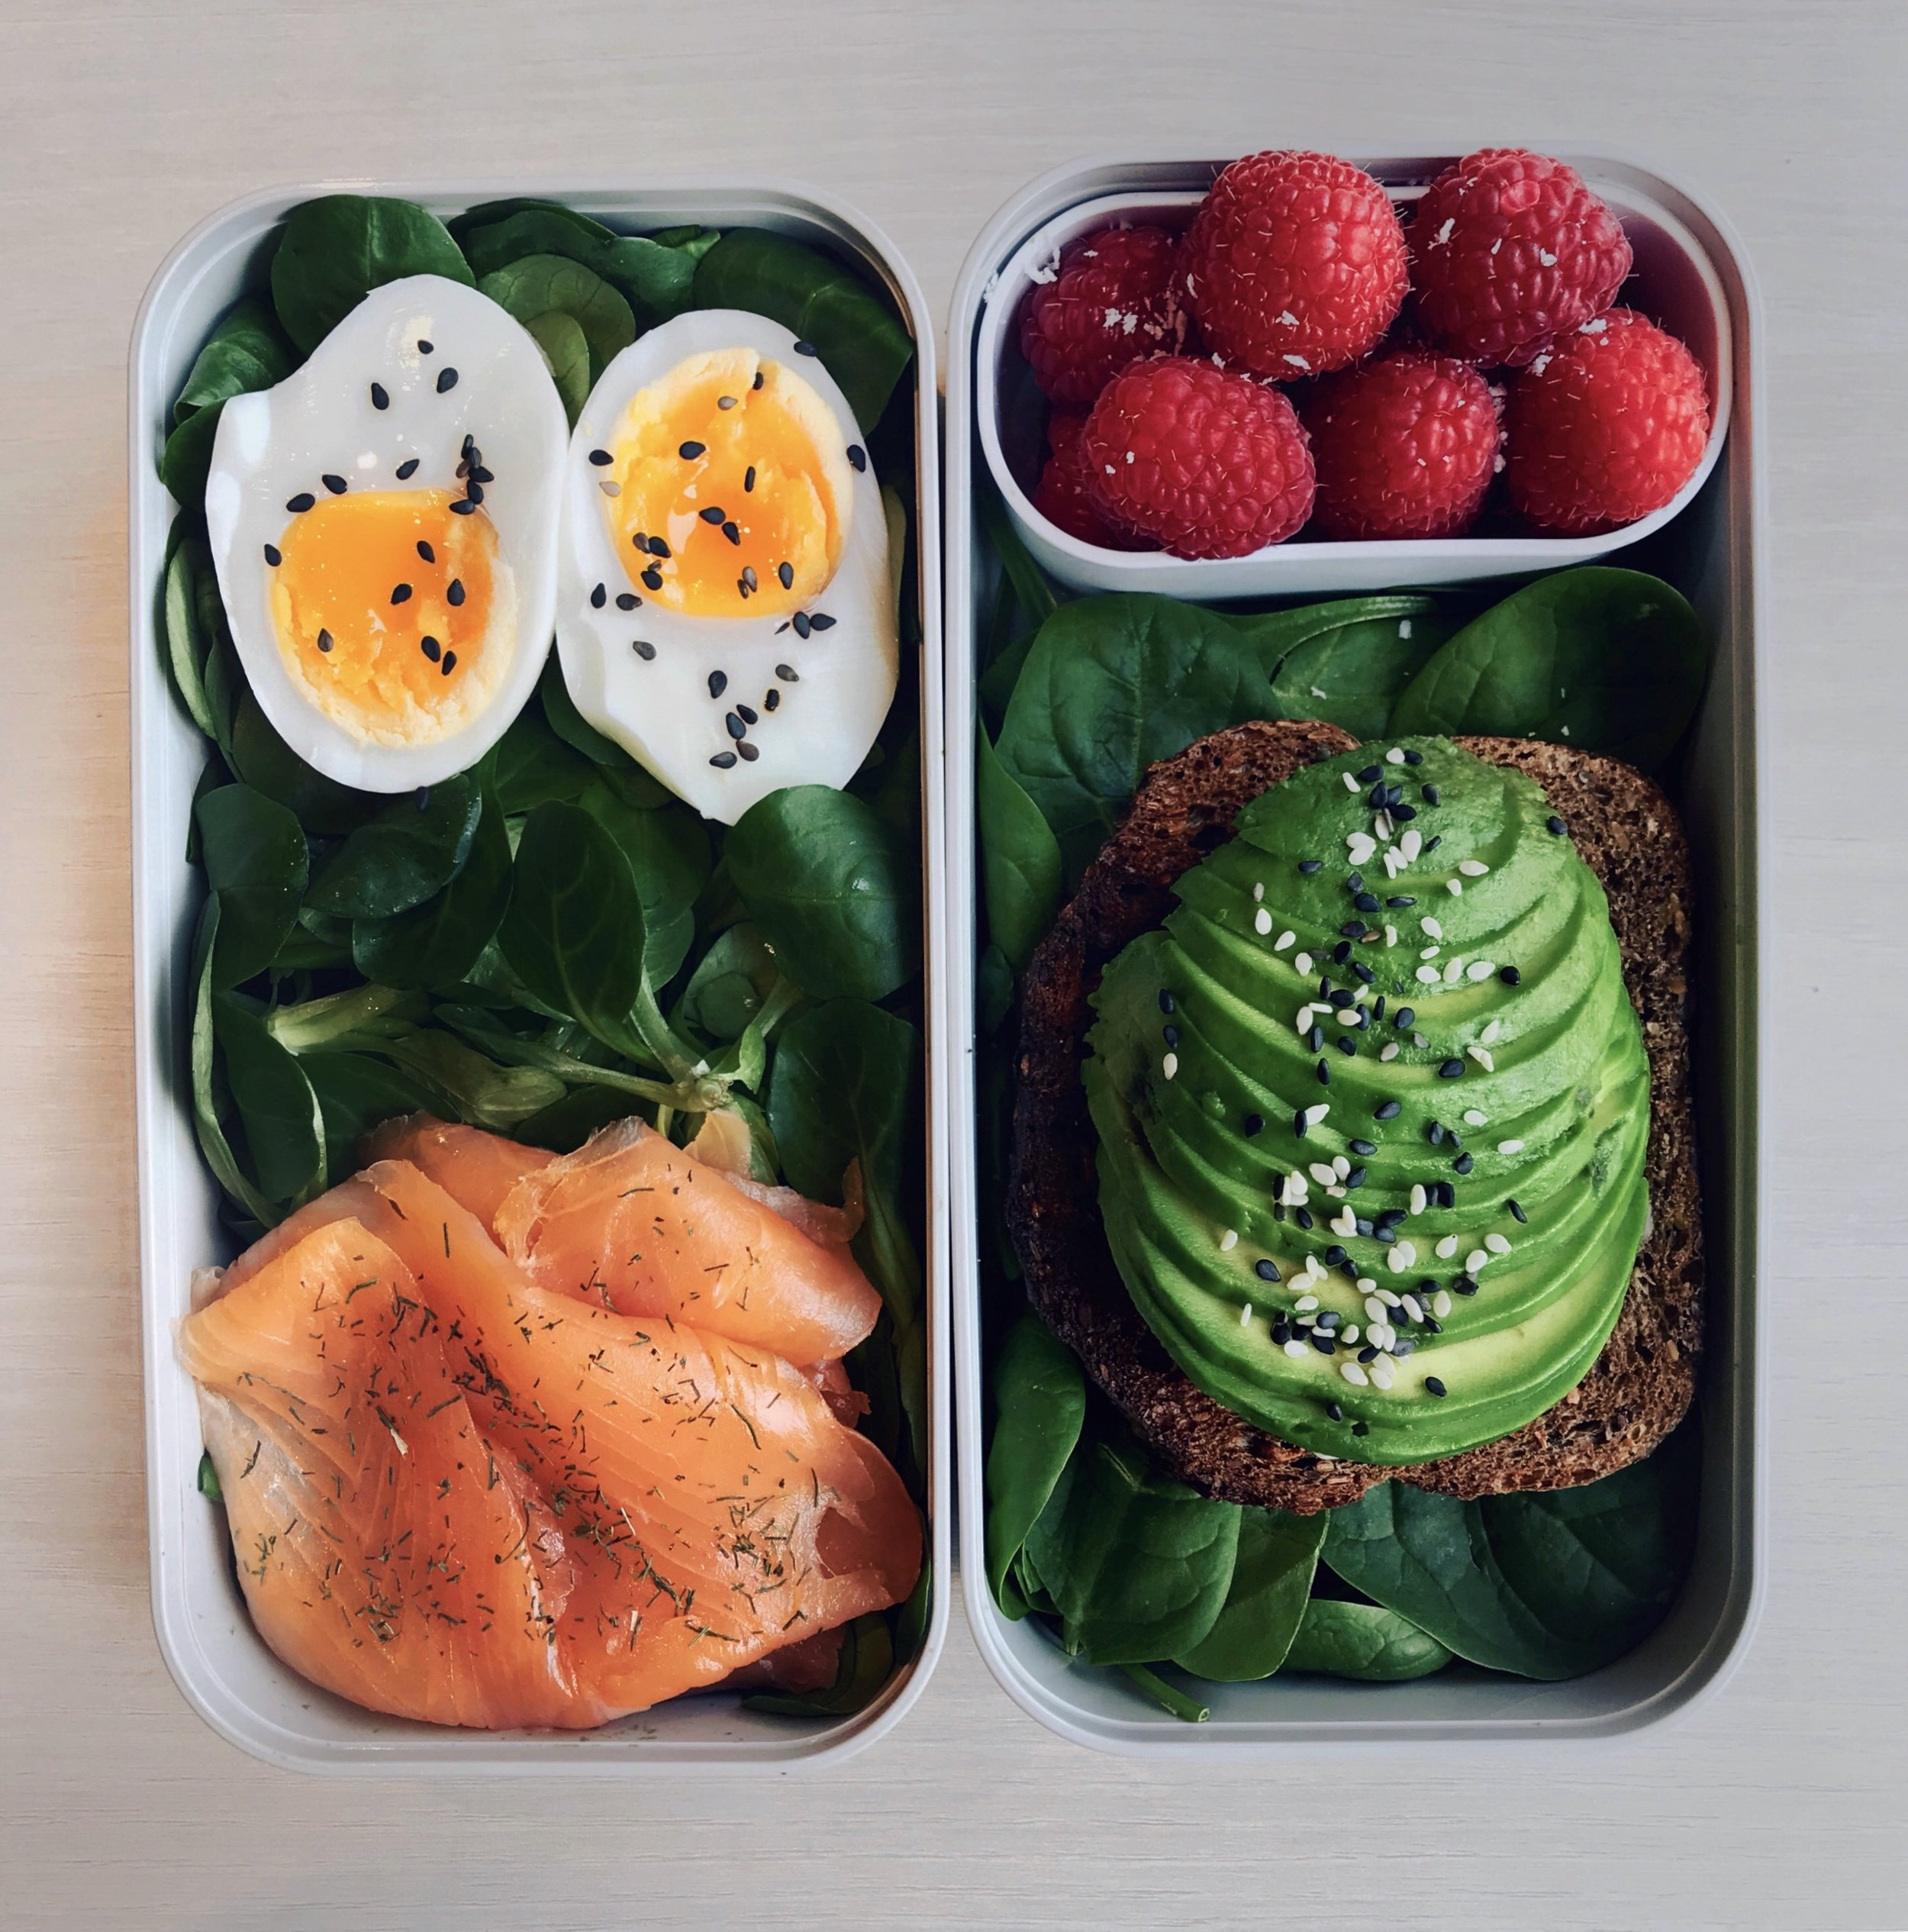 Avocado Toast, Smoked Salmon & Egg Bento - Bed of salad leaves topped with a soft-boiled egg (6min cooking) + some @labeyriefrance smoked salmon + toasted nordic bread topped with avocado slices and @naturalia_magasins_bio sesame seeds + @driscollsberry raspberries with coconut powder